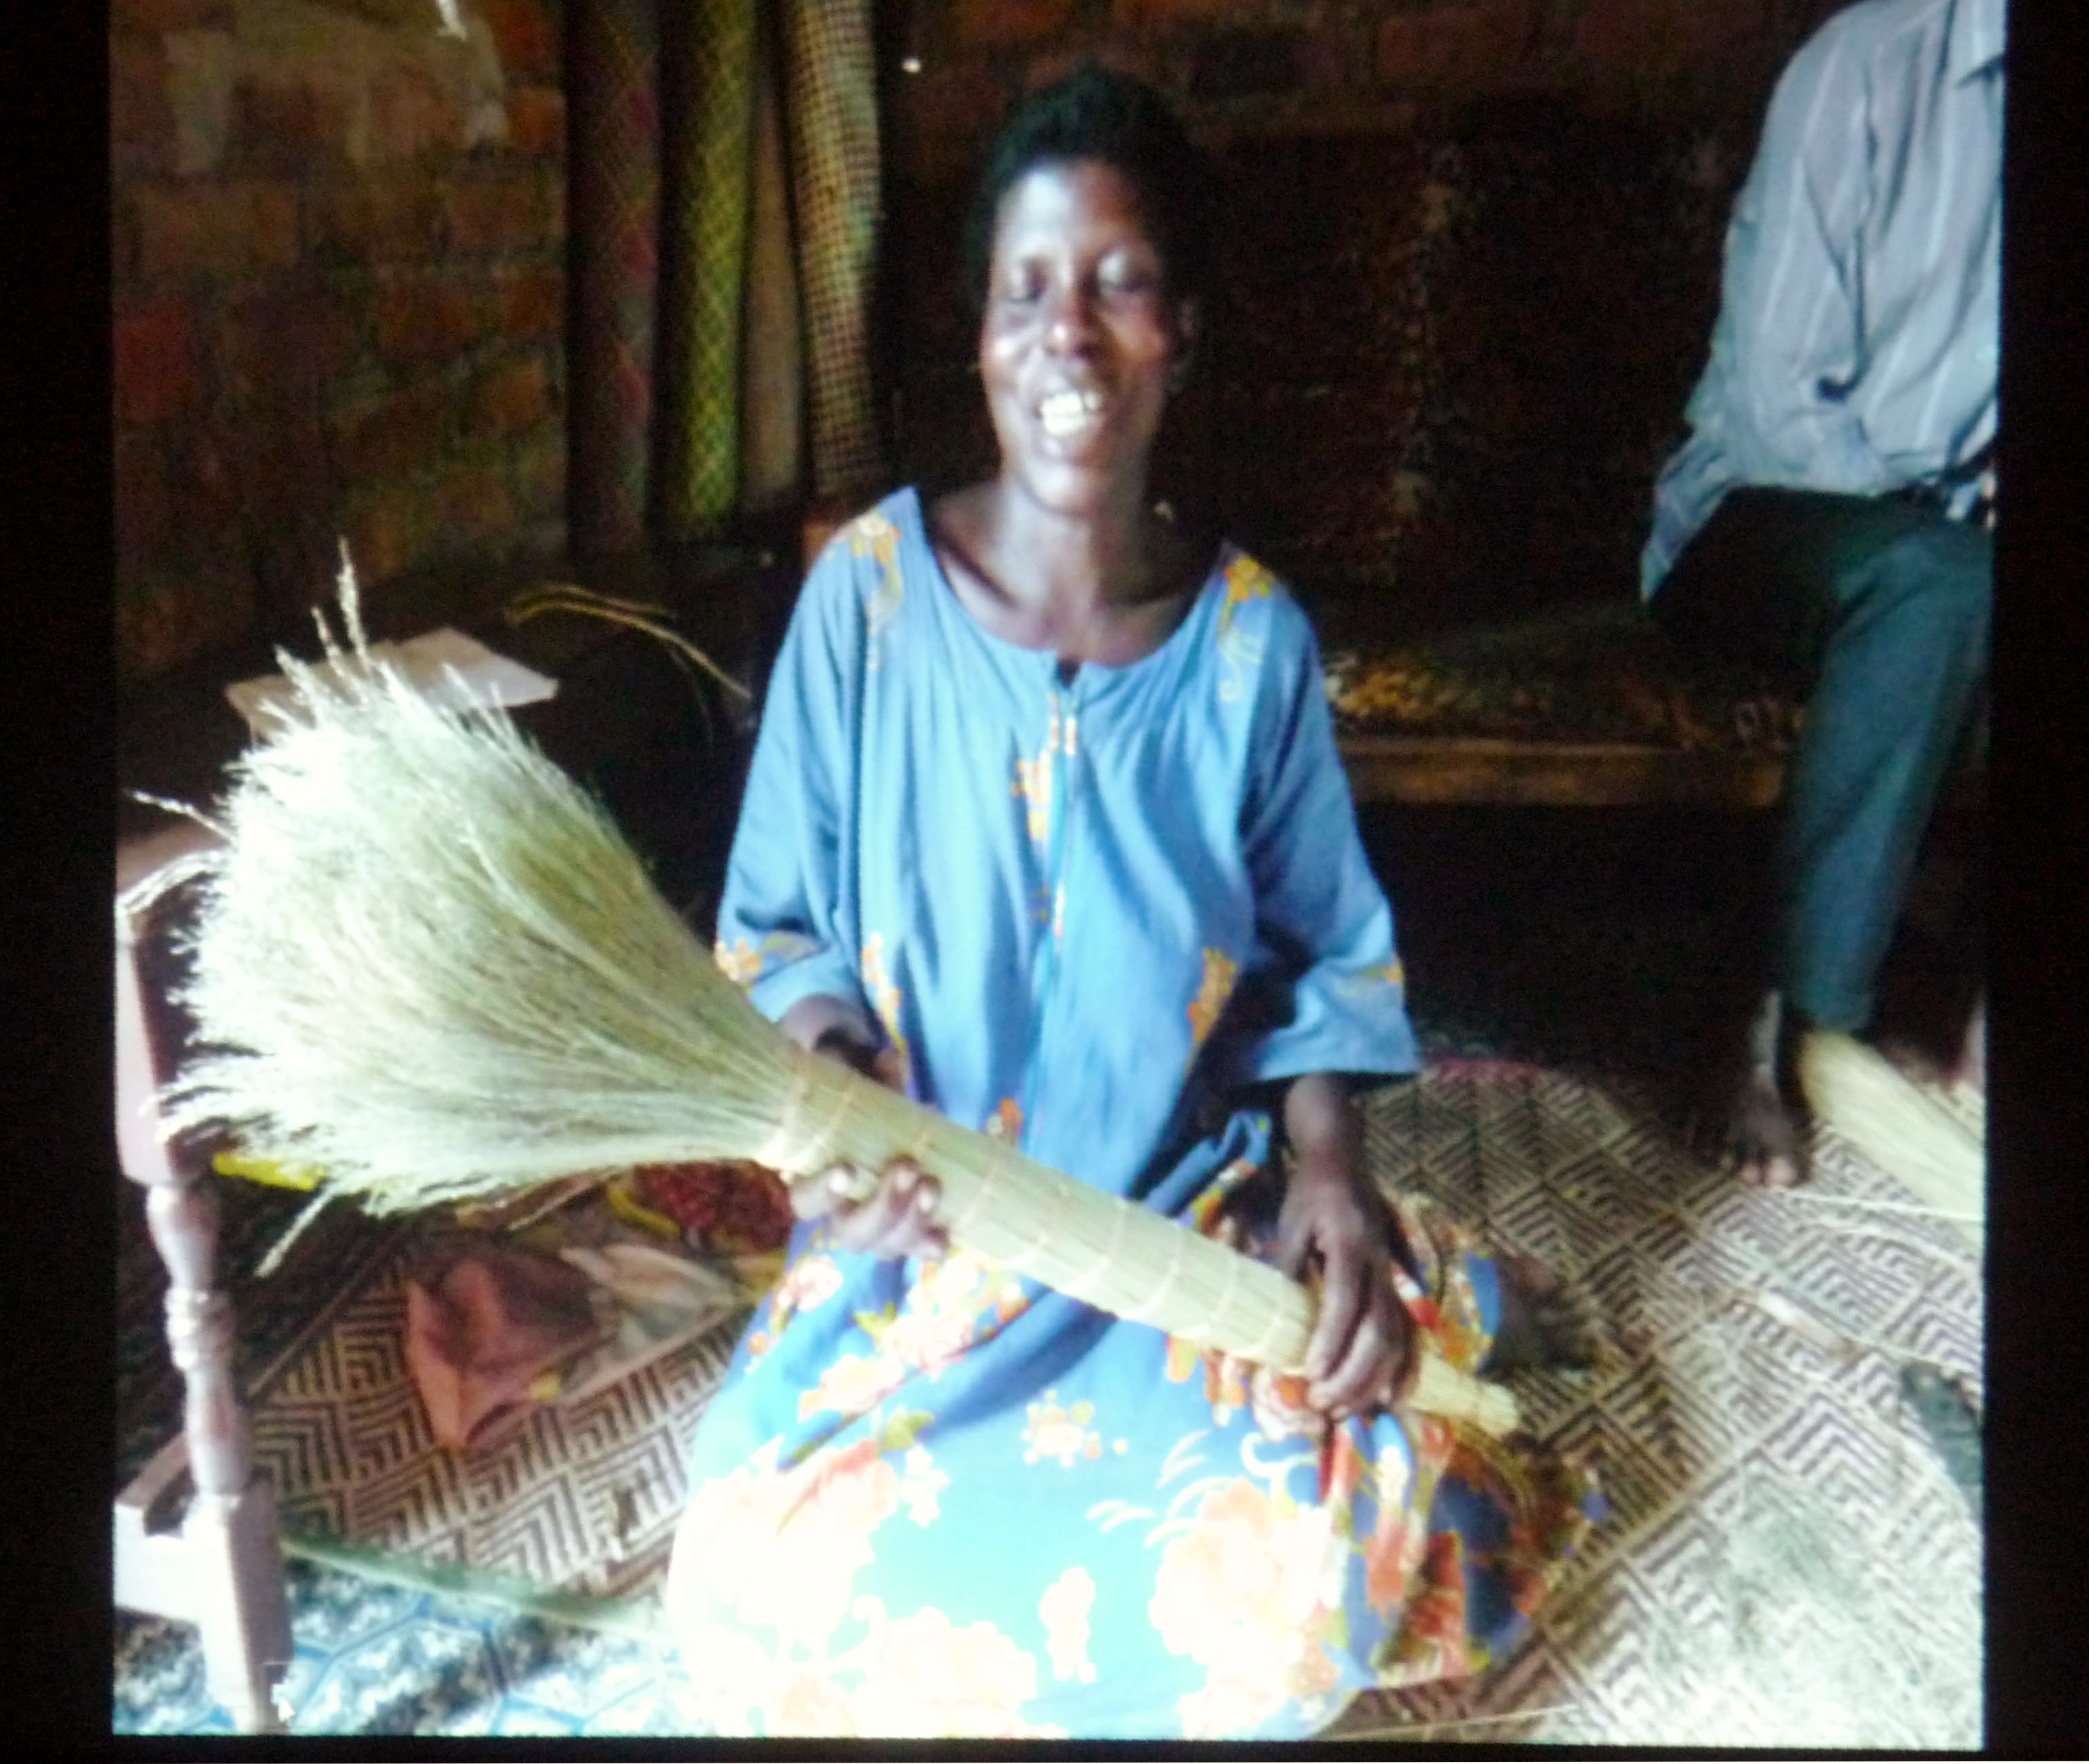 slide by Bobby Britnall showing a Ugandan woman holding a completed broom